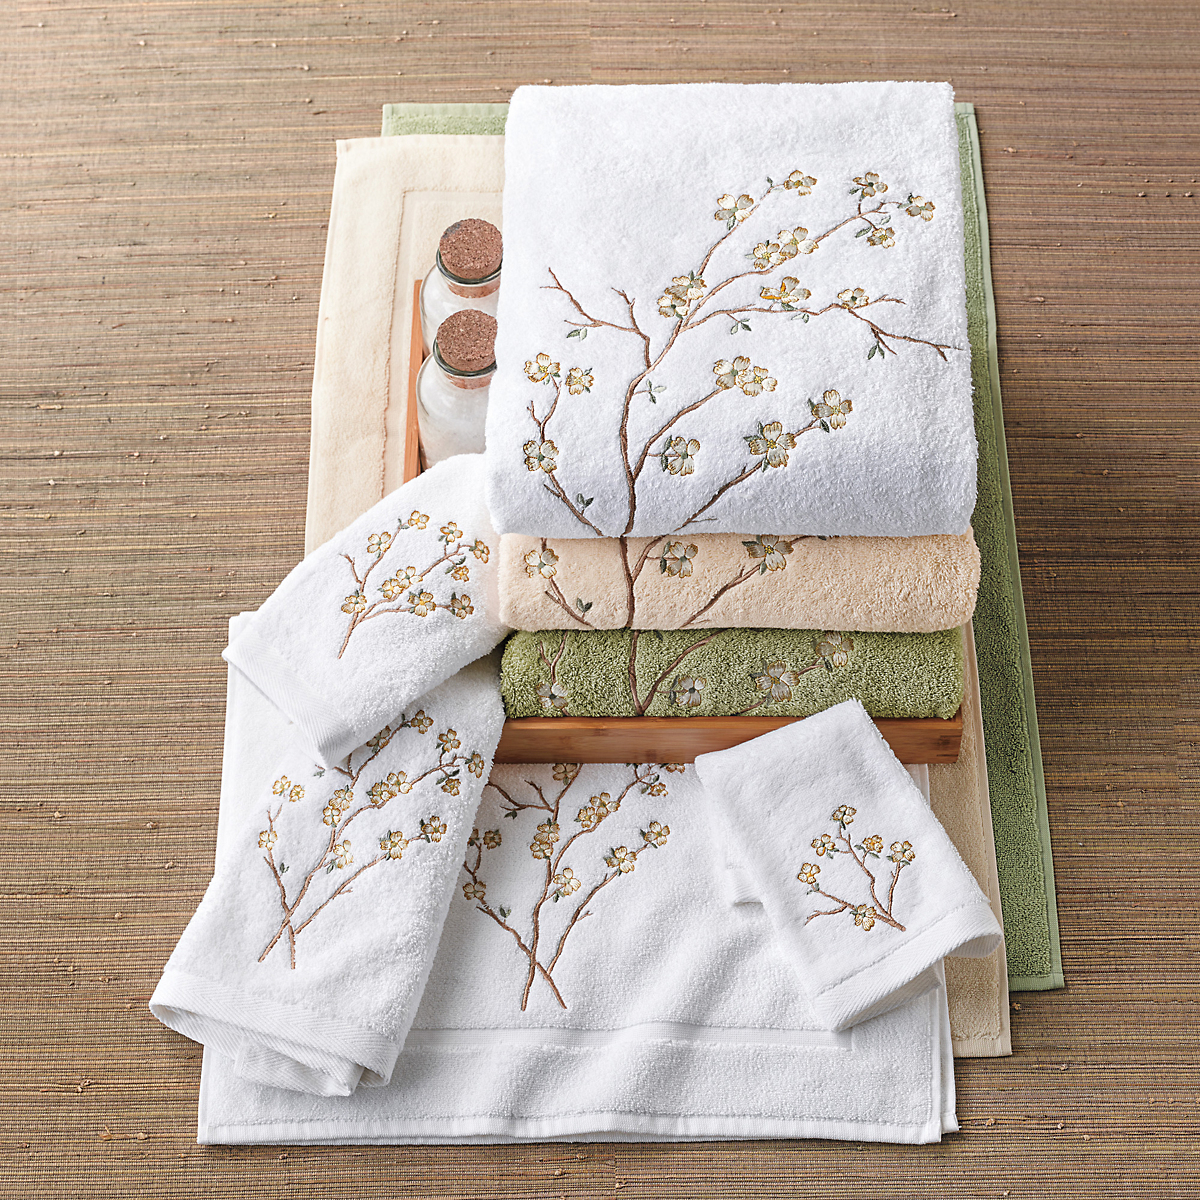 Dogwood Embroidered Towels